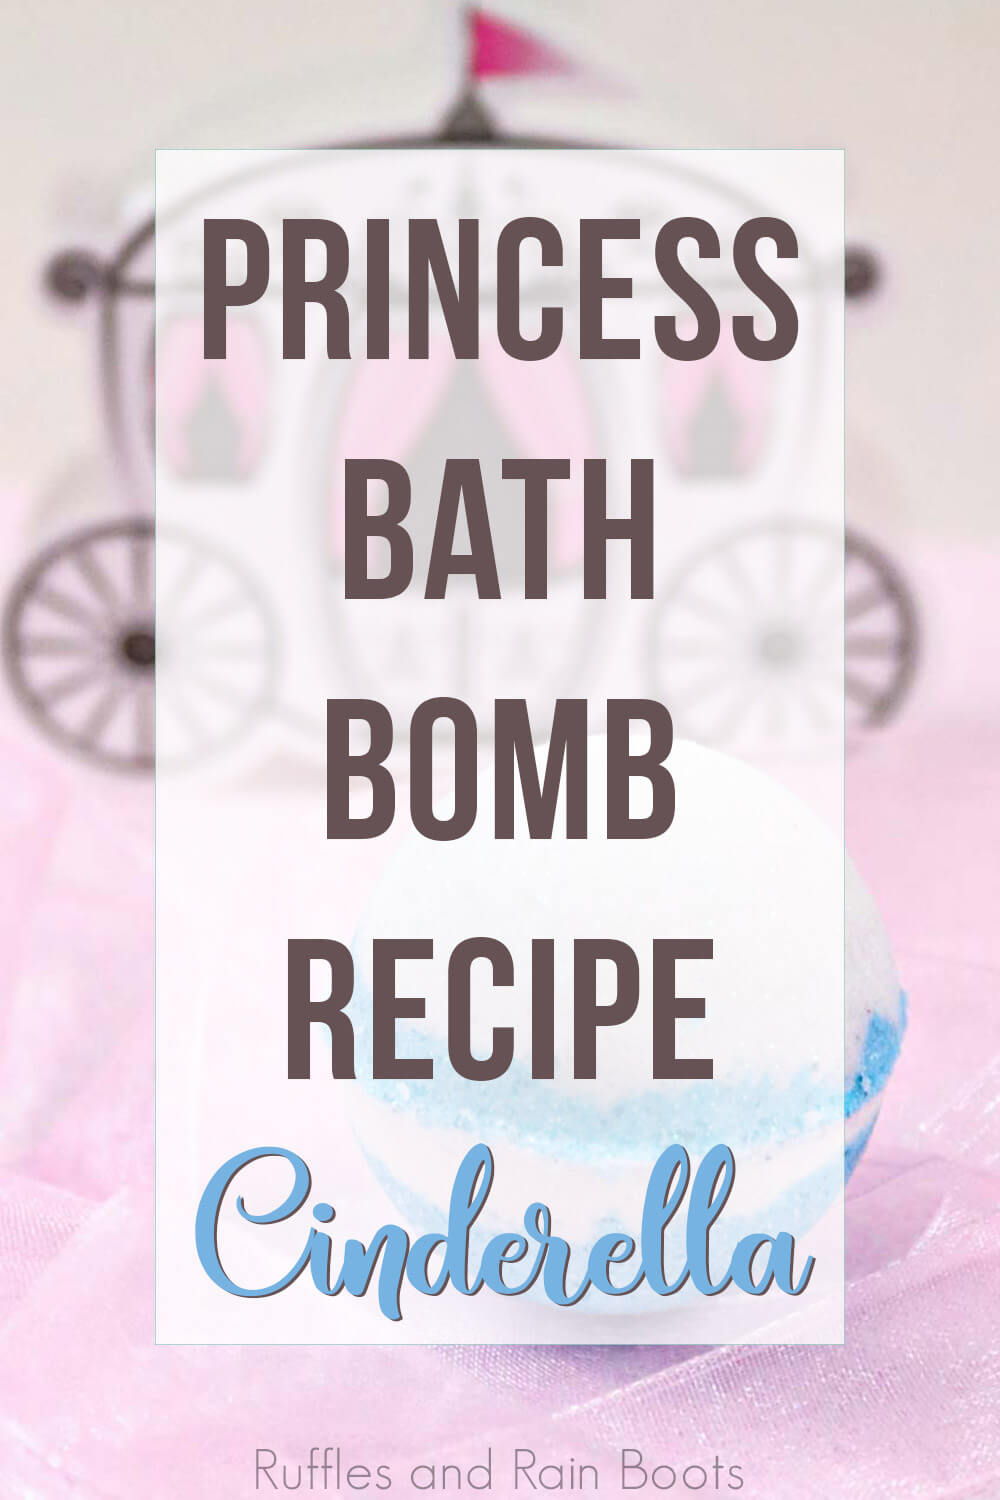 fun cinderella bath bombs disney princess craft with text overlaid which reads princess bath bomb recipe cinderella